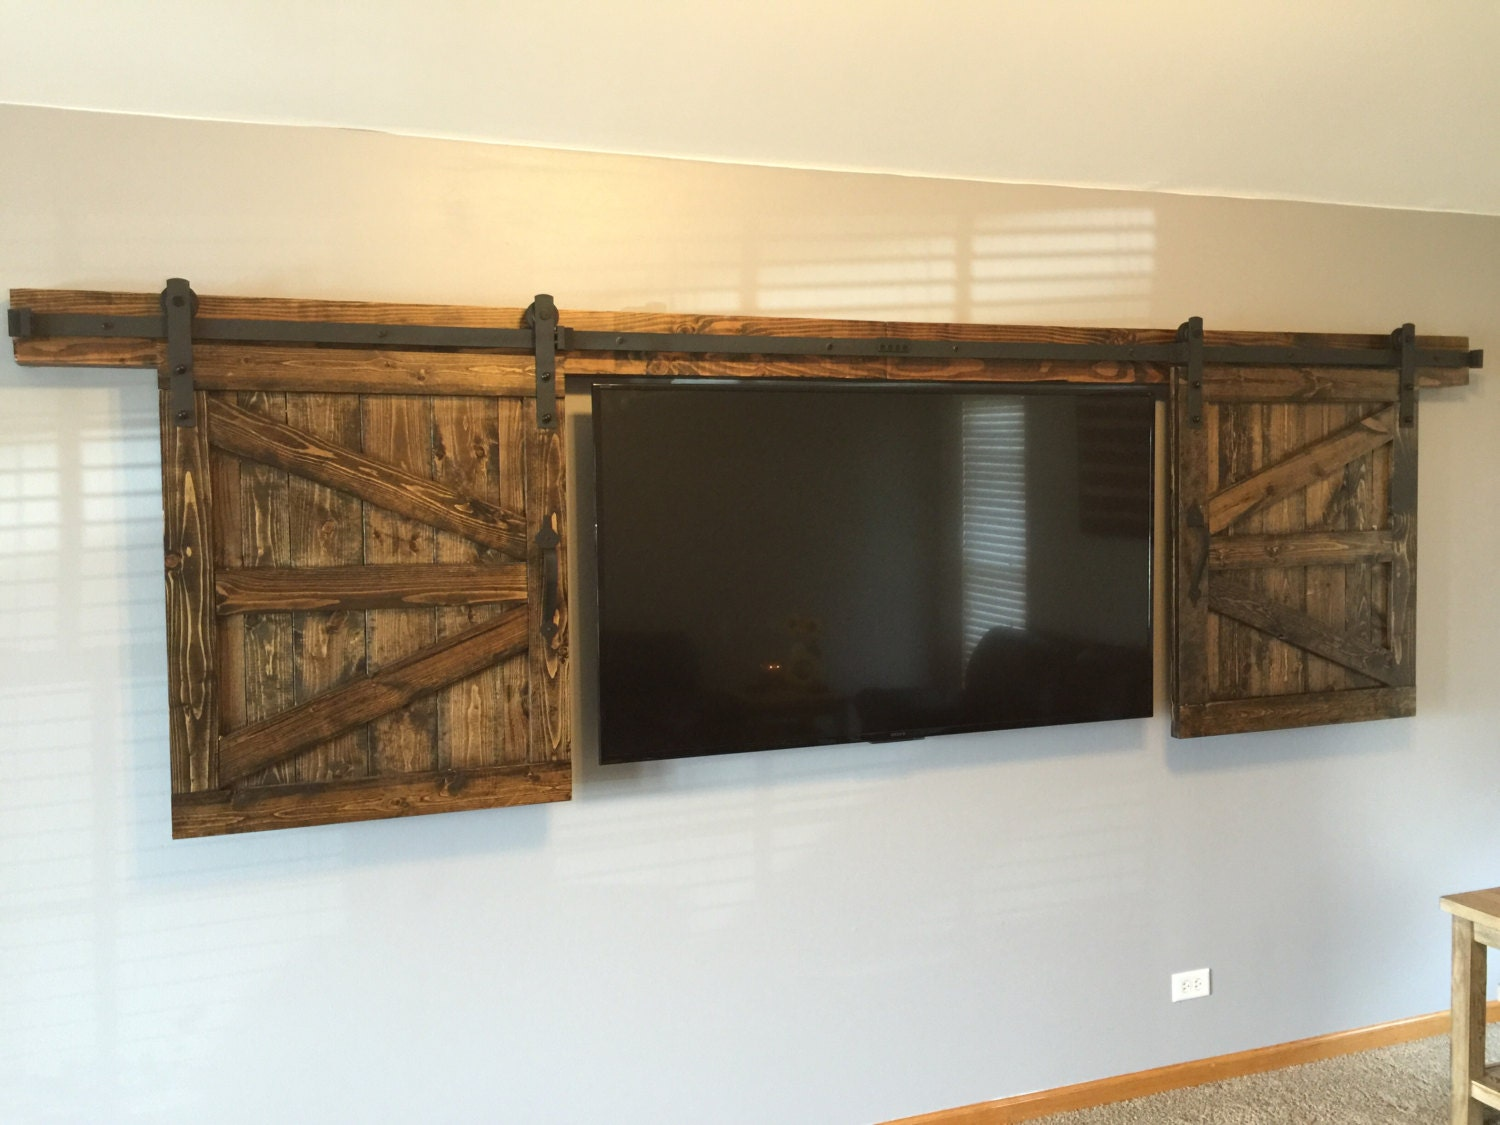 gallery photo gallery photo gallery photo ... & Hidden Sliding TV Barn Door Set - Rustic TV Barn Door - Sliding ... pezcame.com